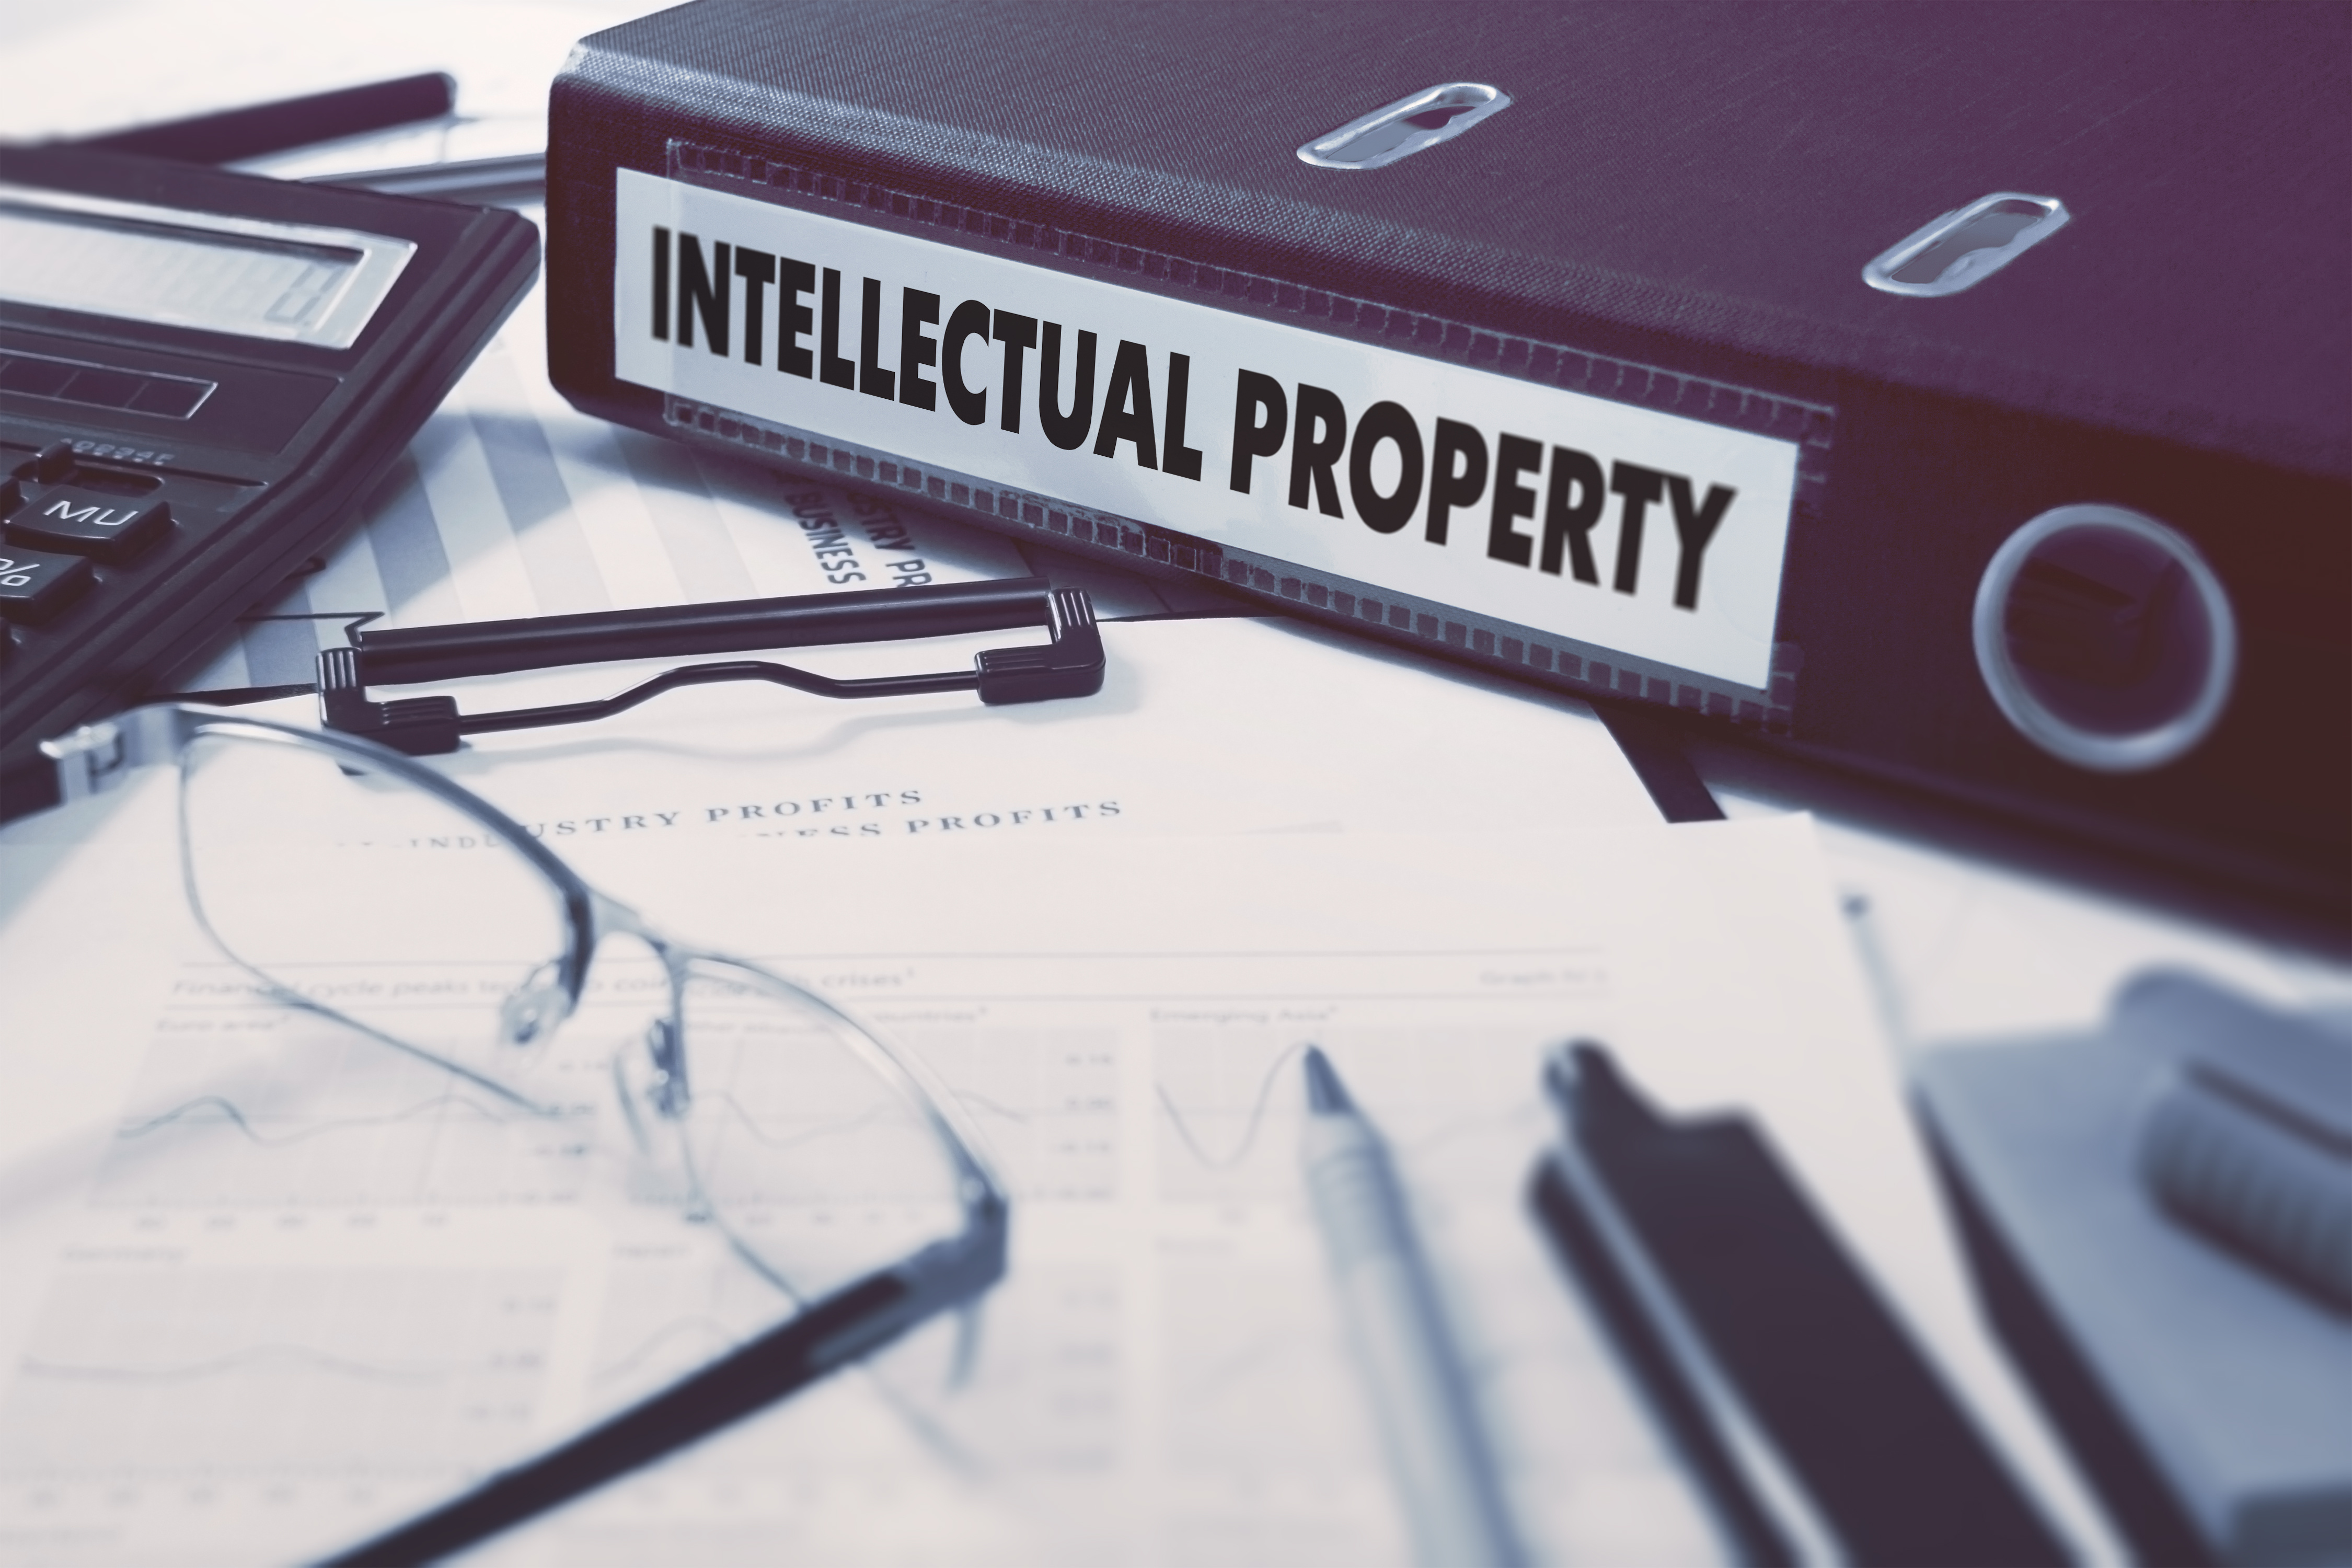 Types of Intellectual Property Disputes